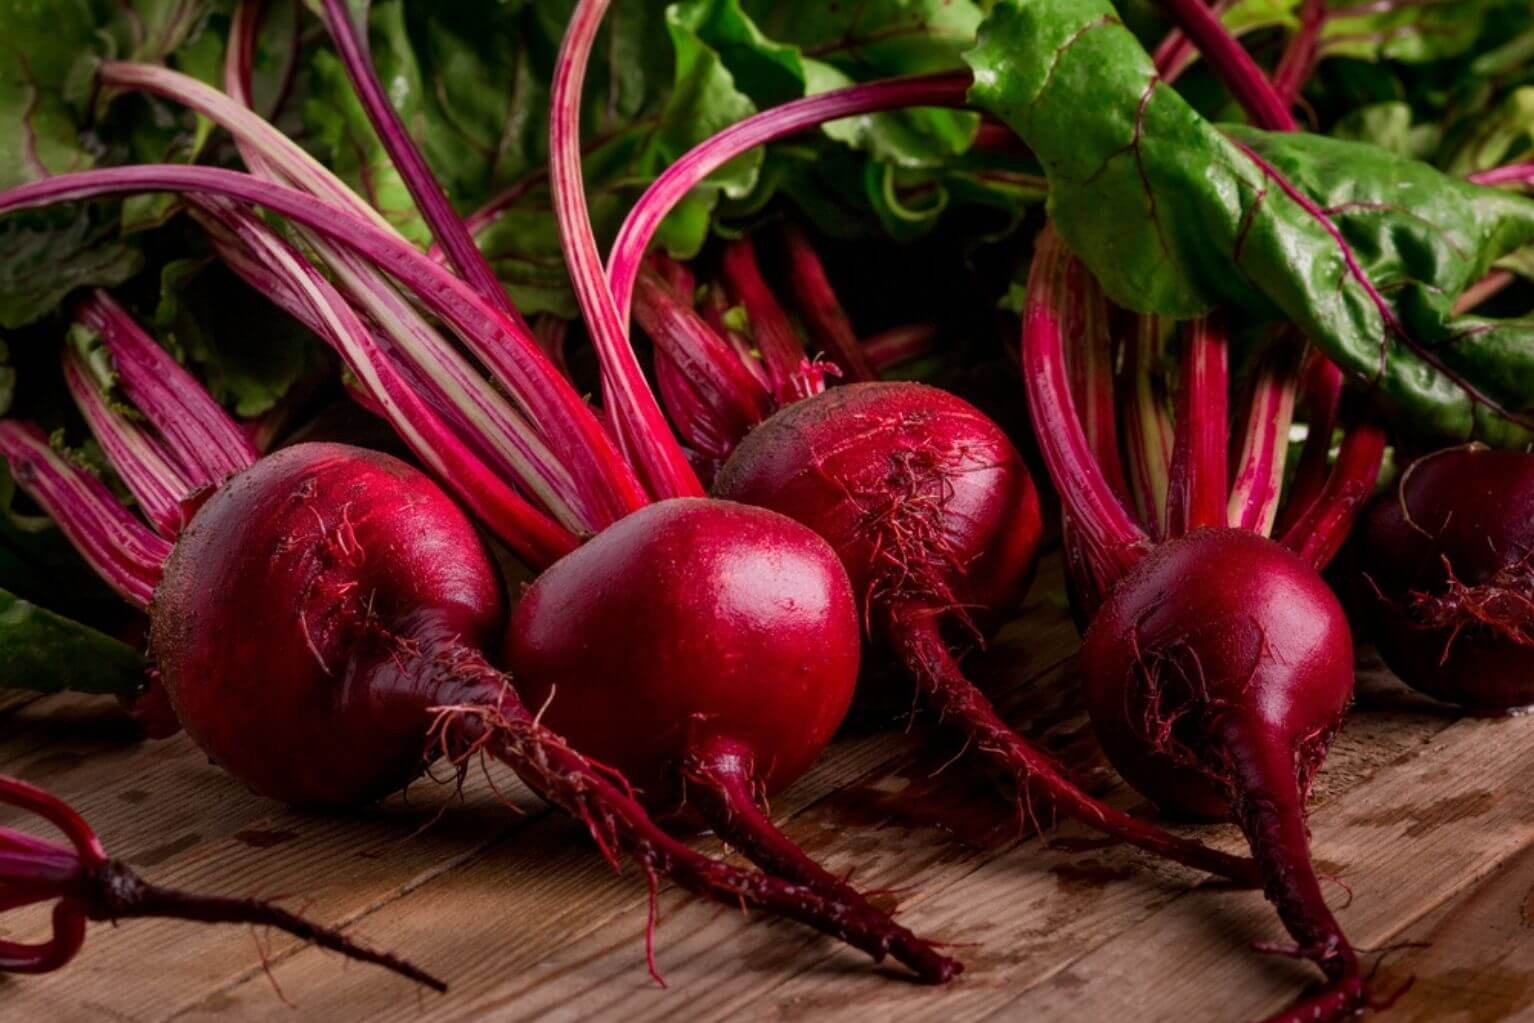 Four beets with their leaves and roots attached on top of a wooden table.